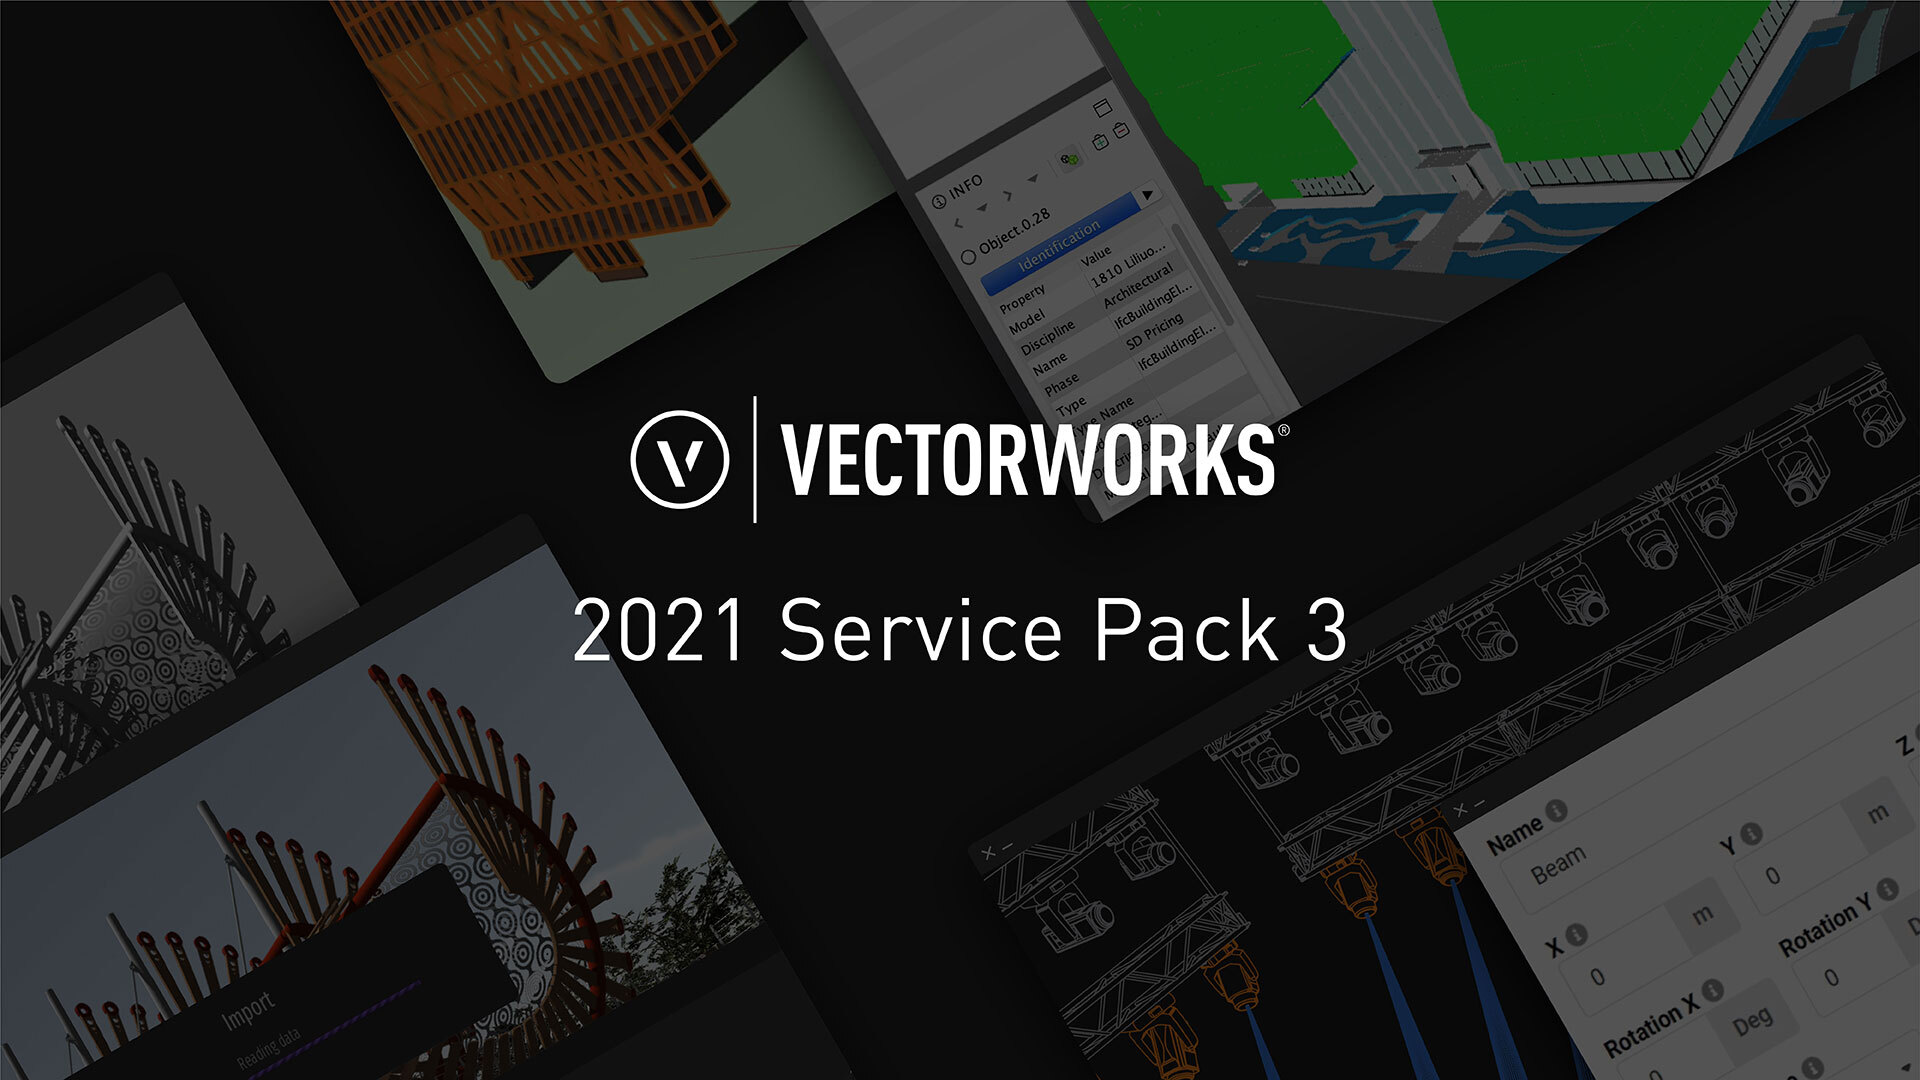 Vectorworks releases third service pack for 2021 product line